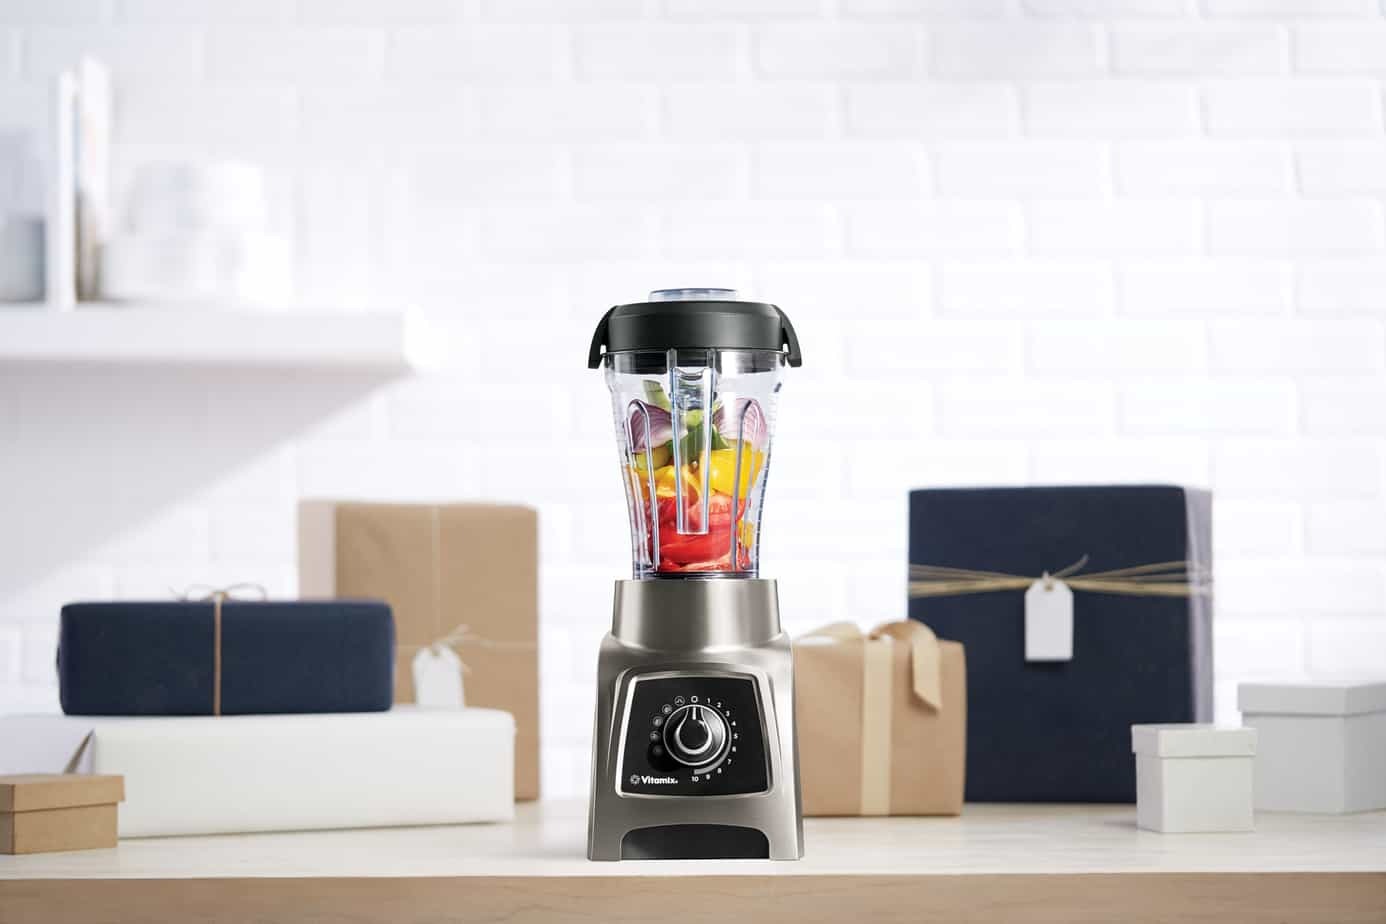 promo image for Vitamix giveaway